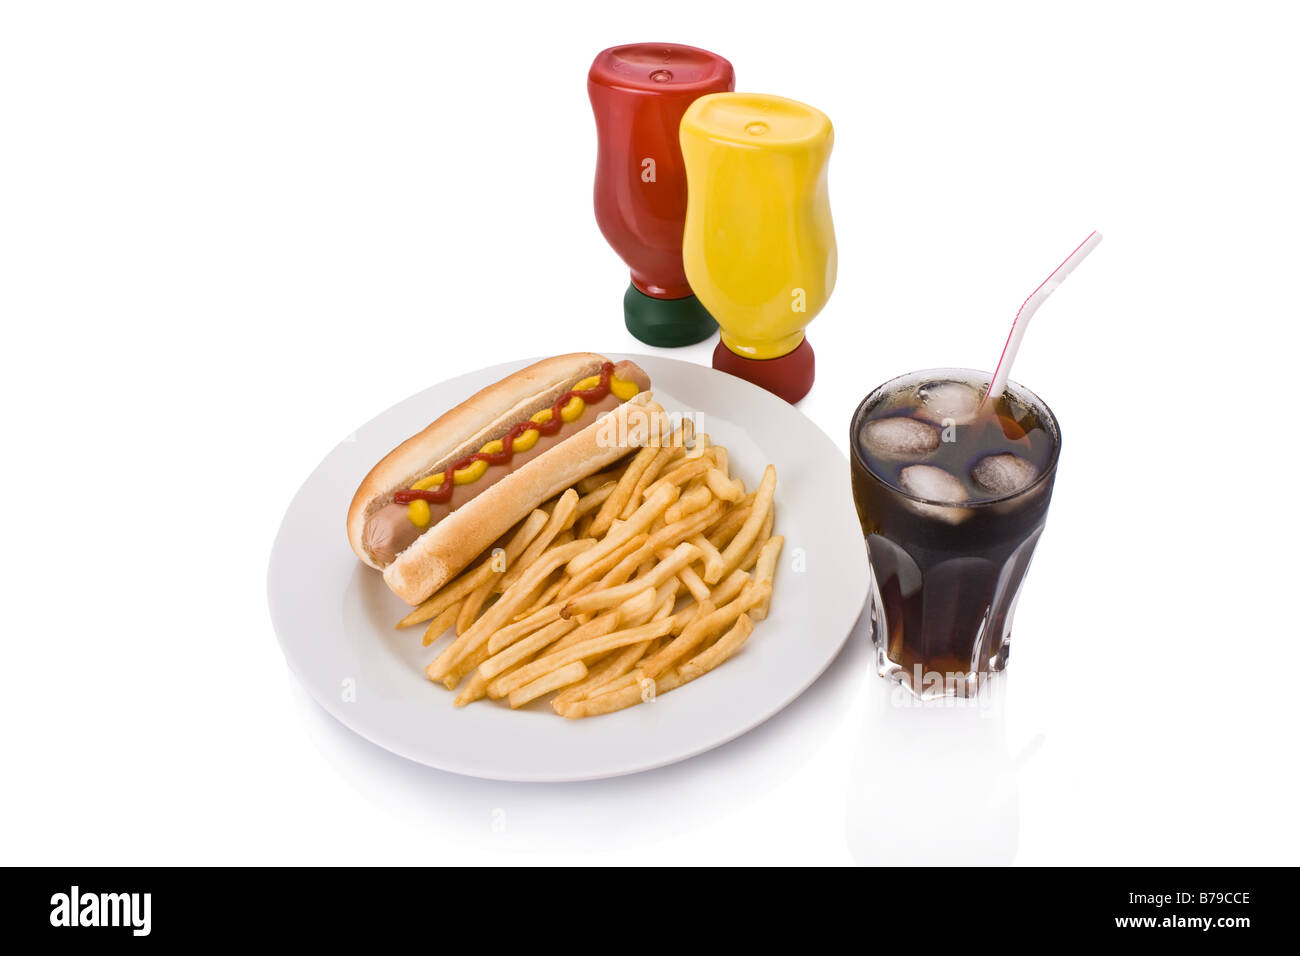 Fast food meal with Hotdog, French fries and a Cola in a dish - Stock Image